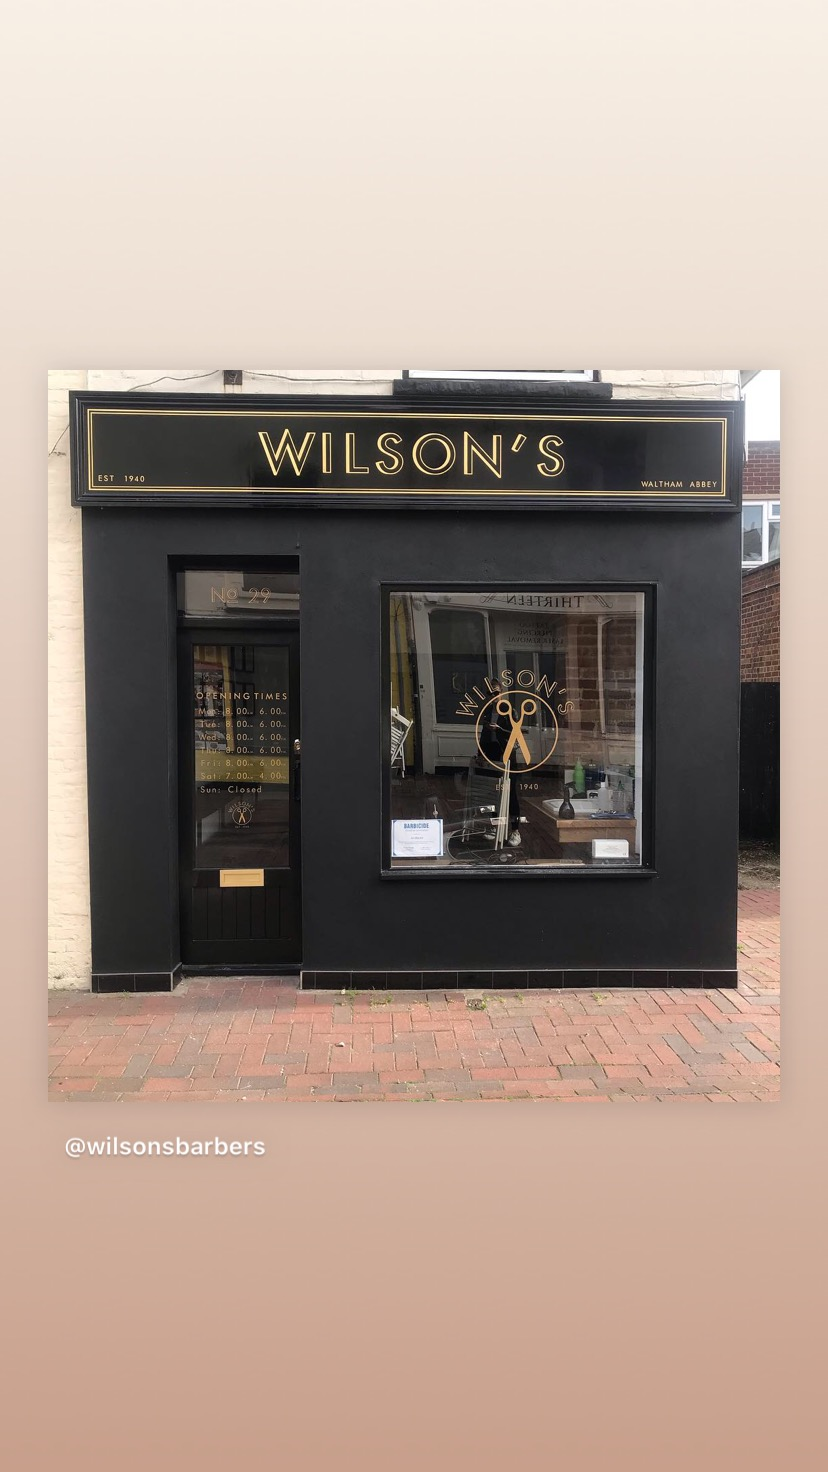 Wilson's barbers of Waltham Abbey